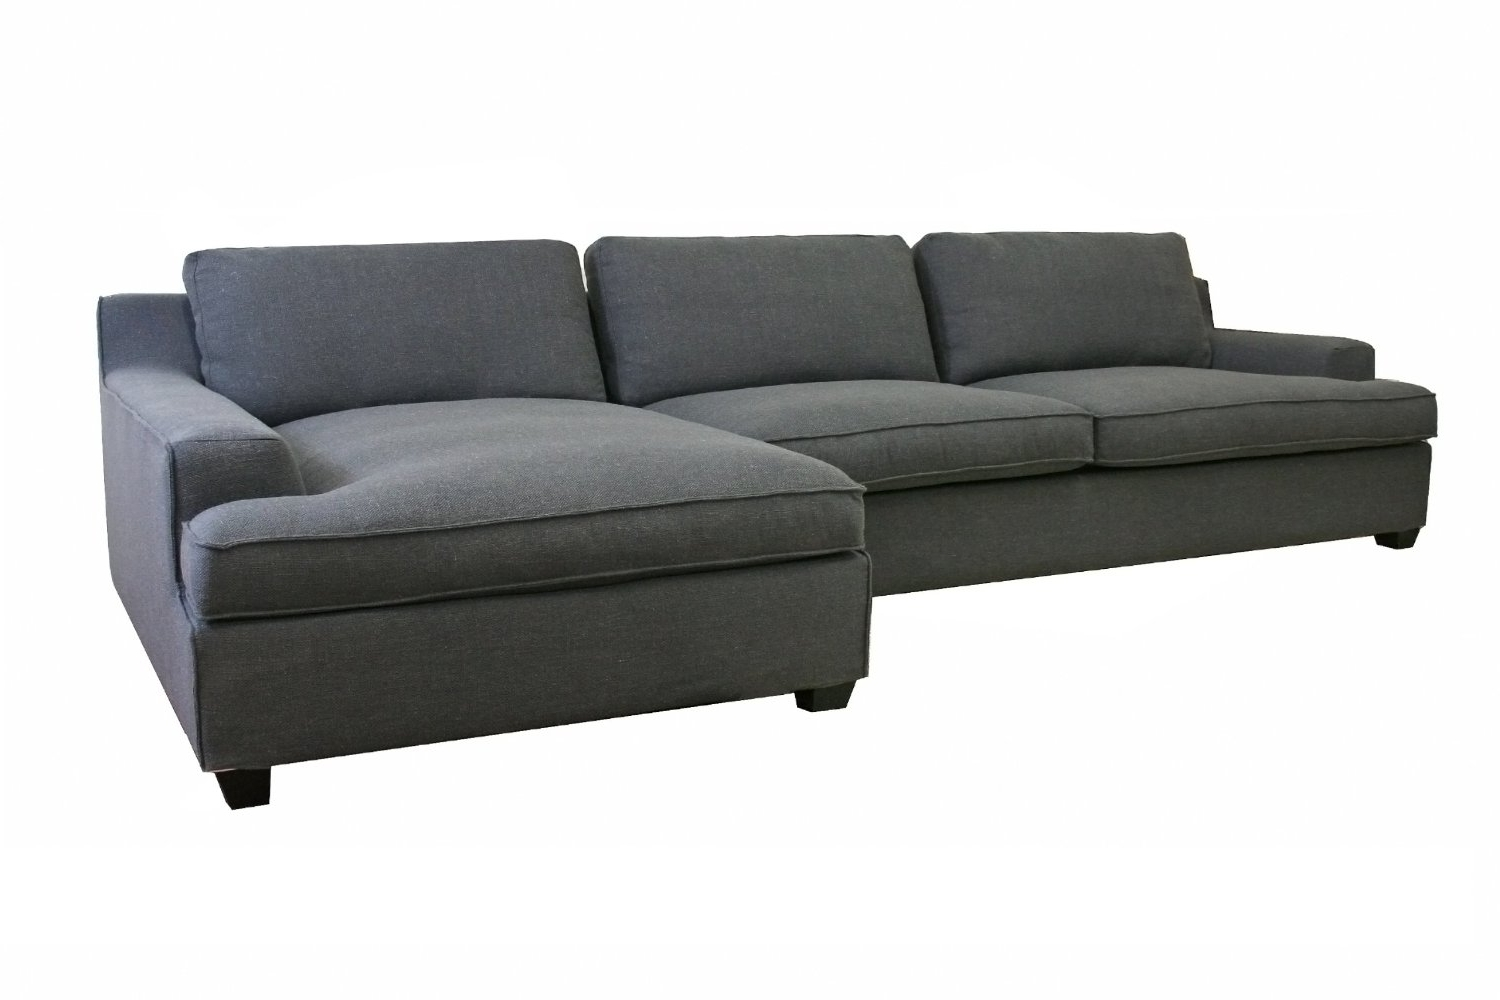 Fashionable Leather Loveseat With Chaise 72 Inch Sofa Sectional Sleeper Sofa Within Chaise Sofa Sectionals (View 13 of 15)